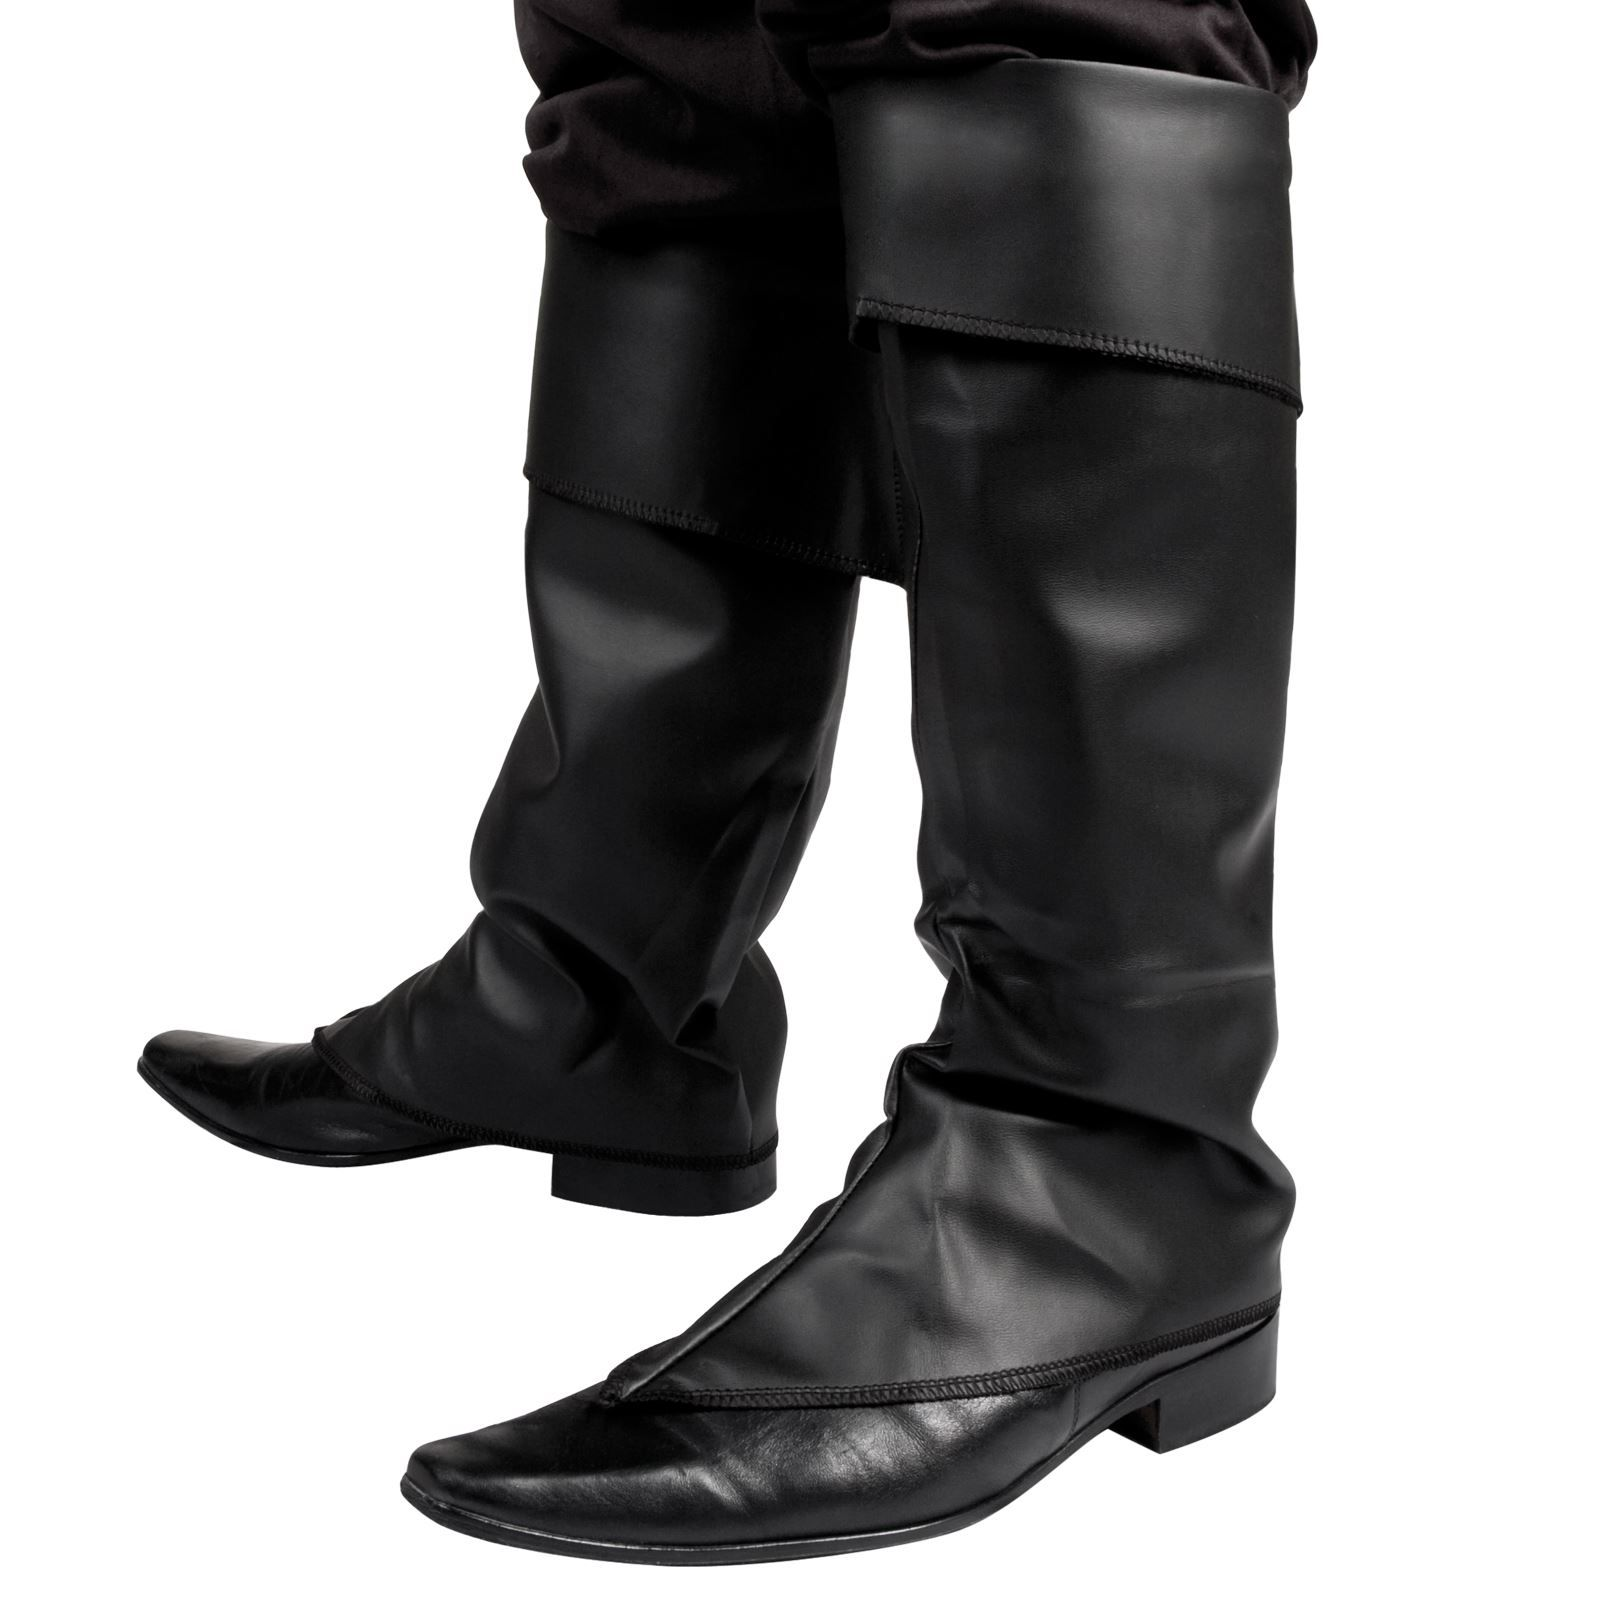 Black Leather Look Medieval Pirate Jack Sparrow Fancy Dress Costume Boot Covers